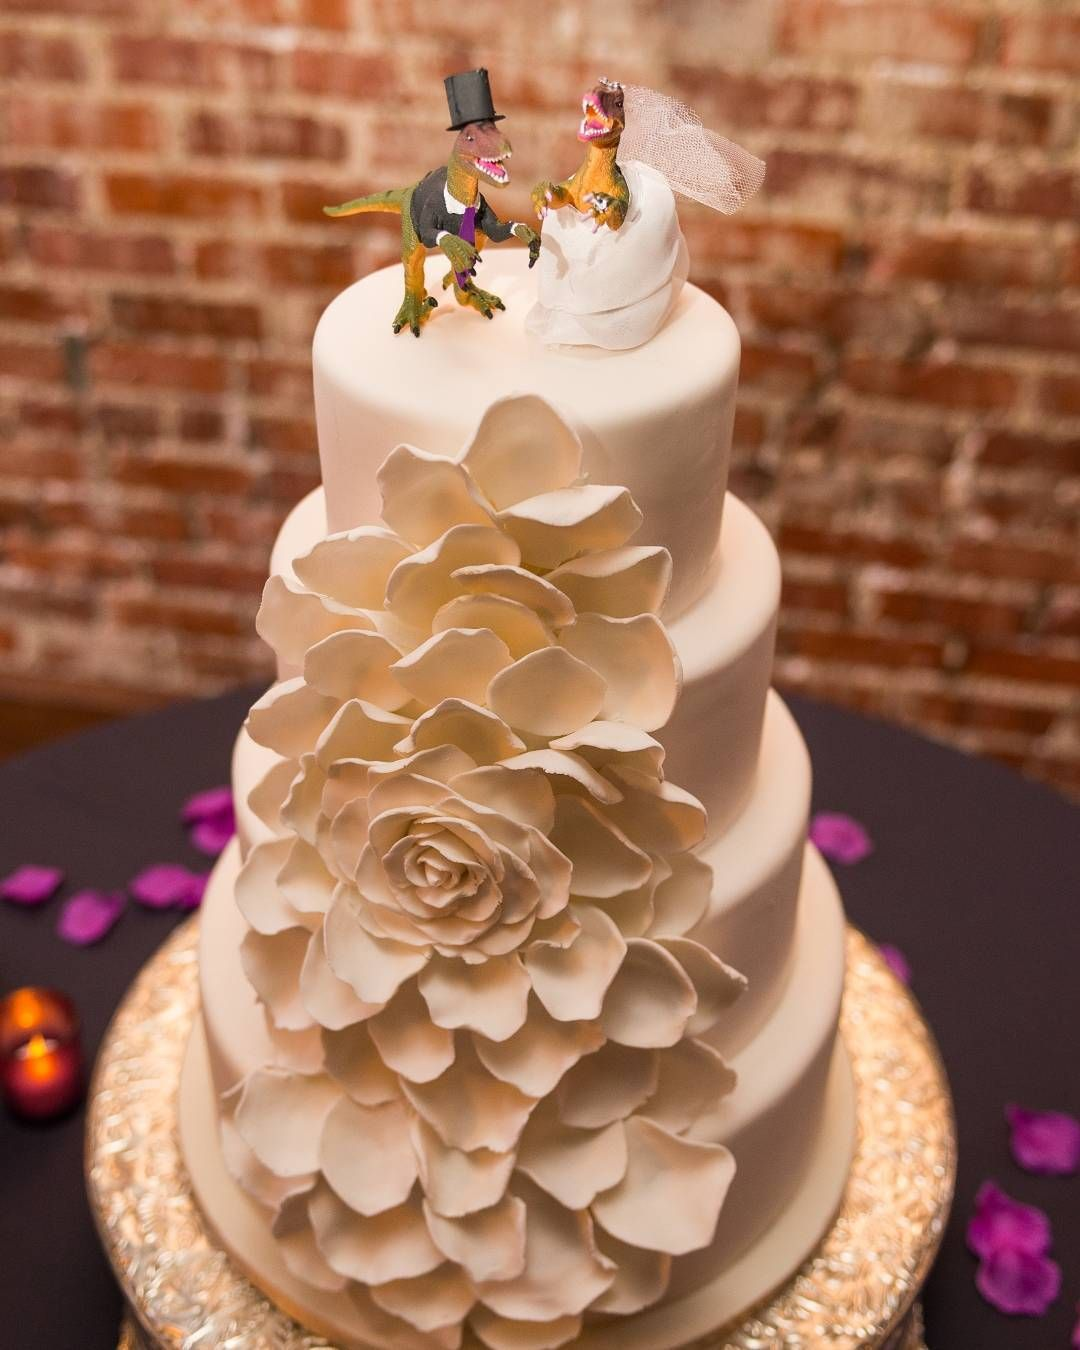 Elegant Cake With Gint White Petals Raptor Bride And Groom Wedding Toppers